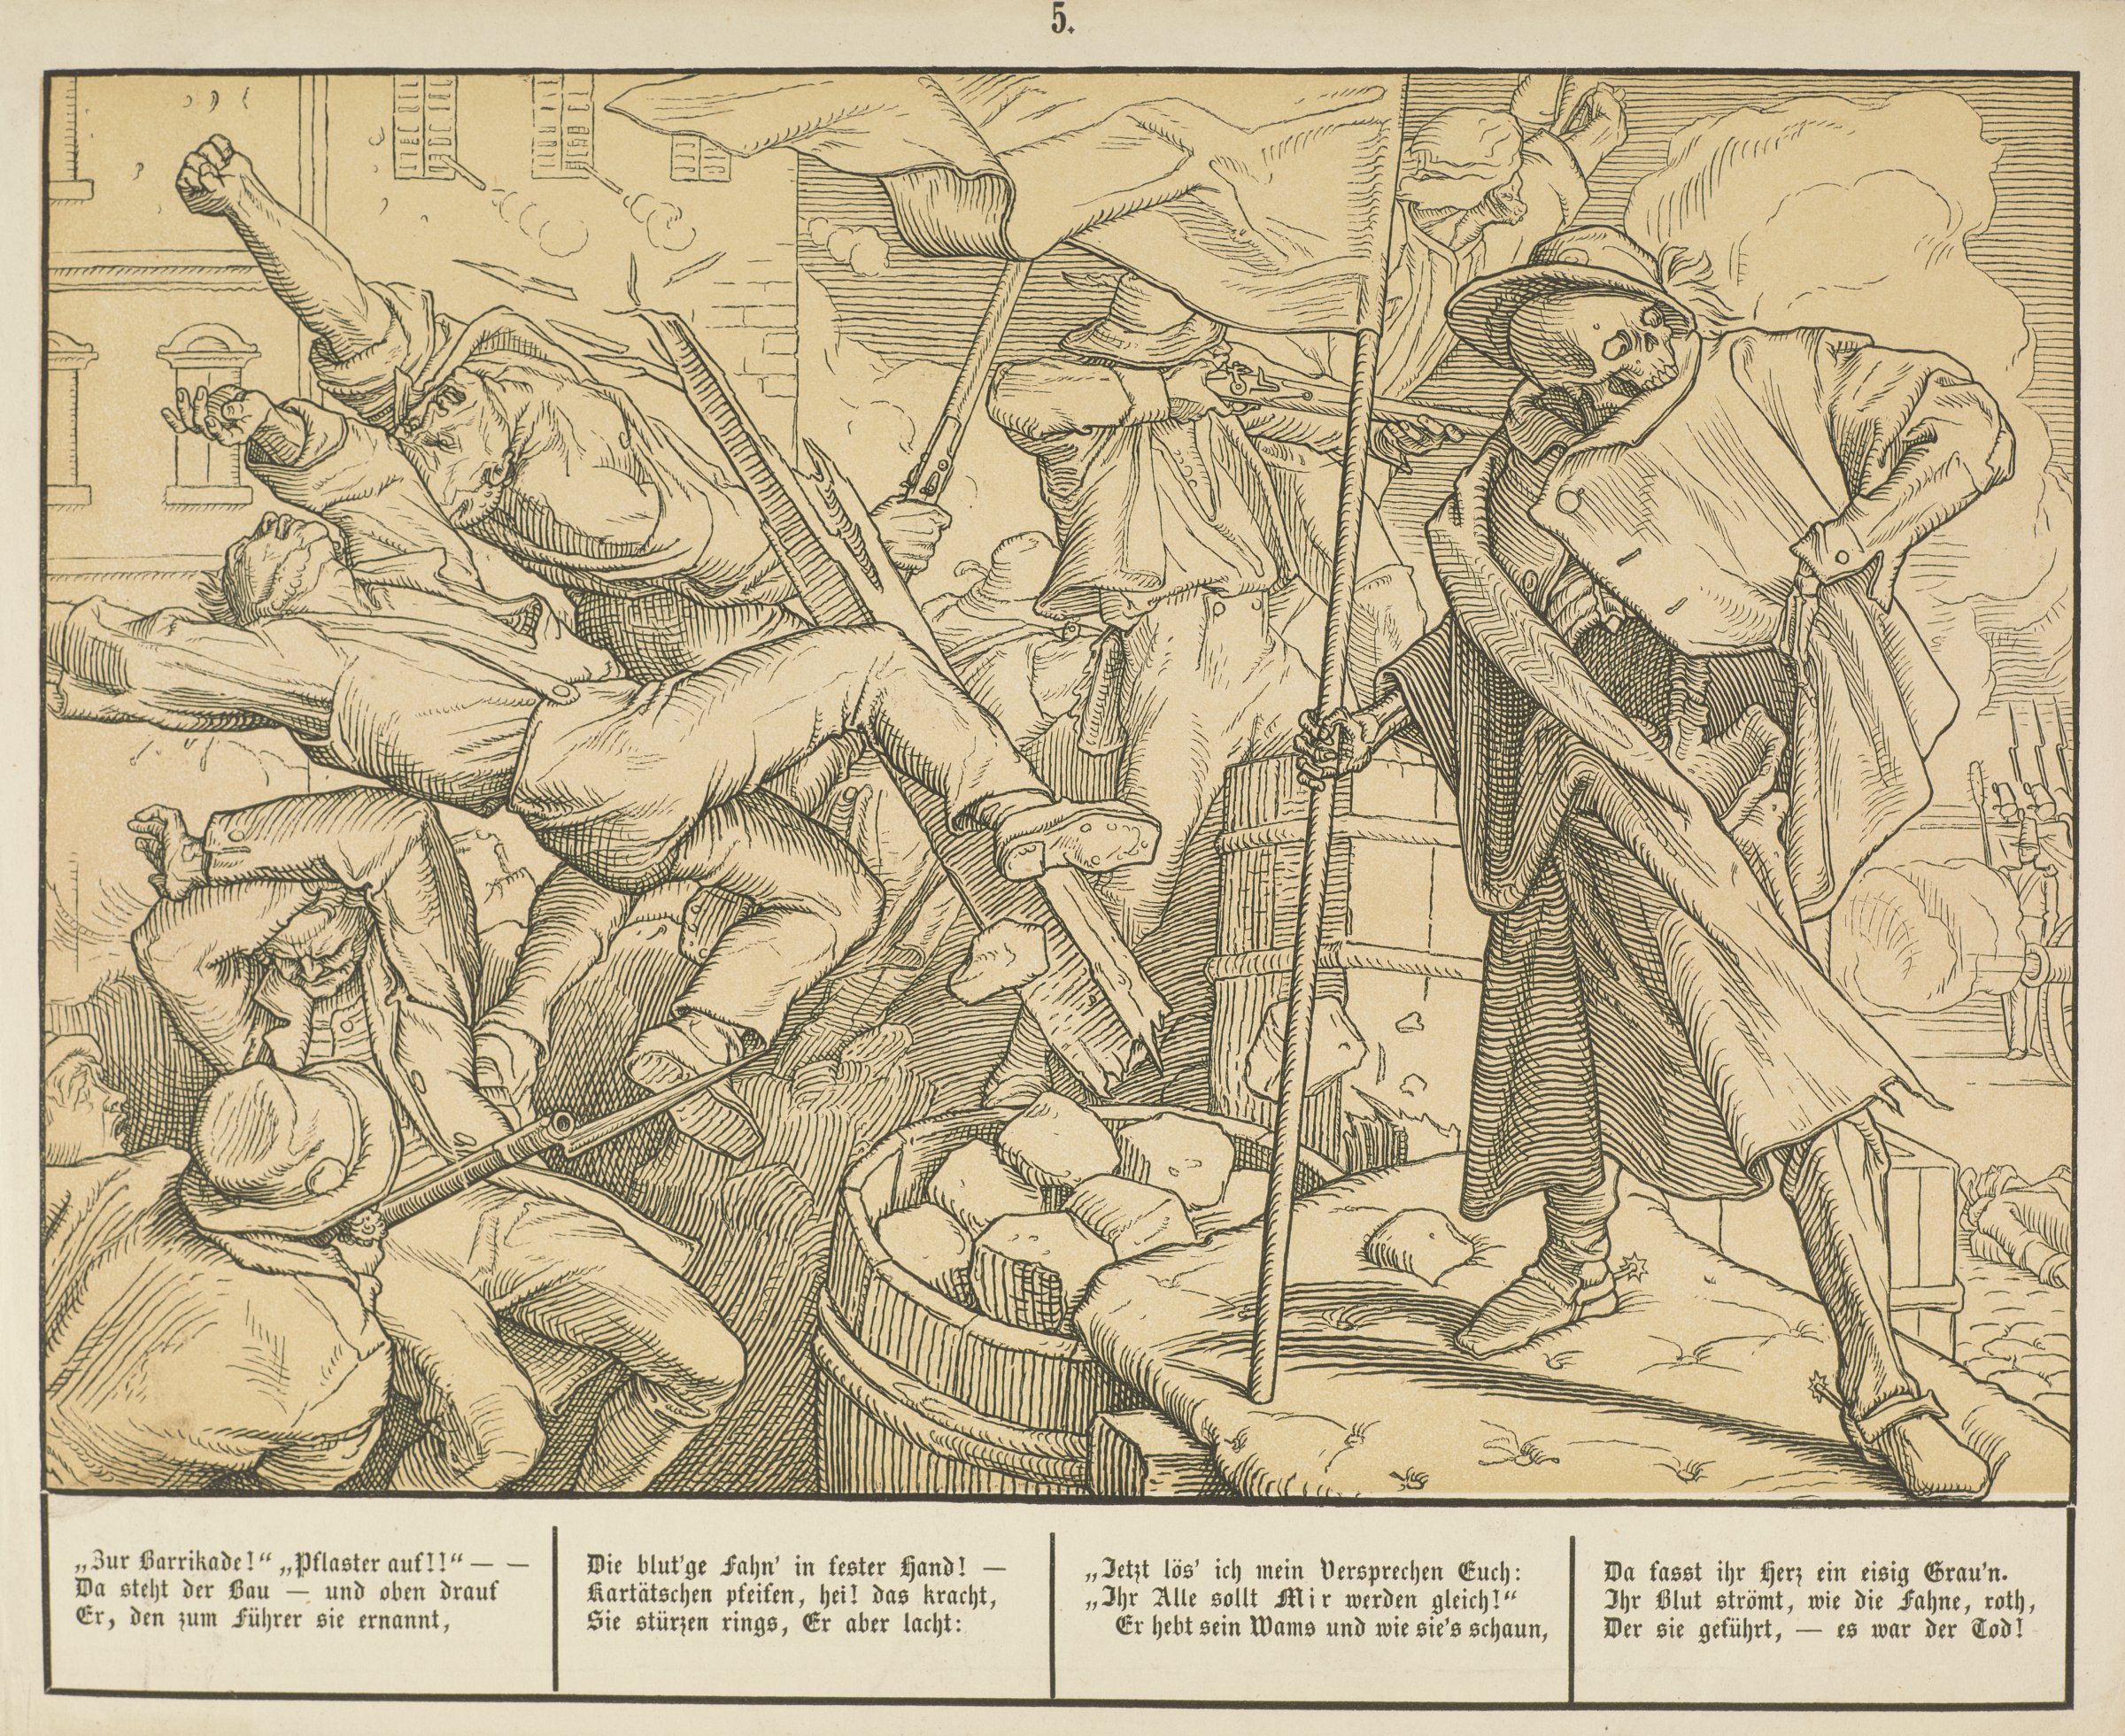 On the right, a skeleton dressed in a coat and hat stands holding a flag as he looks to the right. On the left, several men shoot guns and others fall backwards.